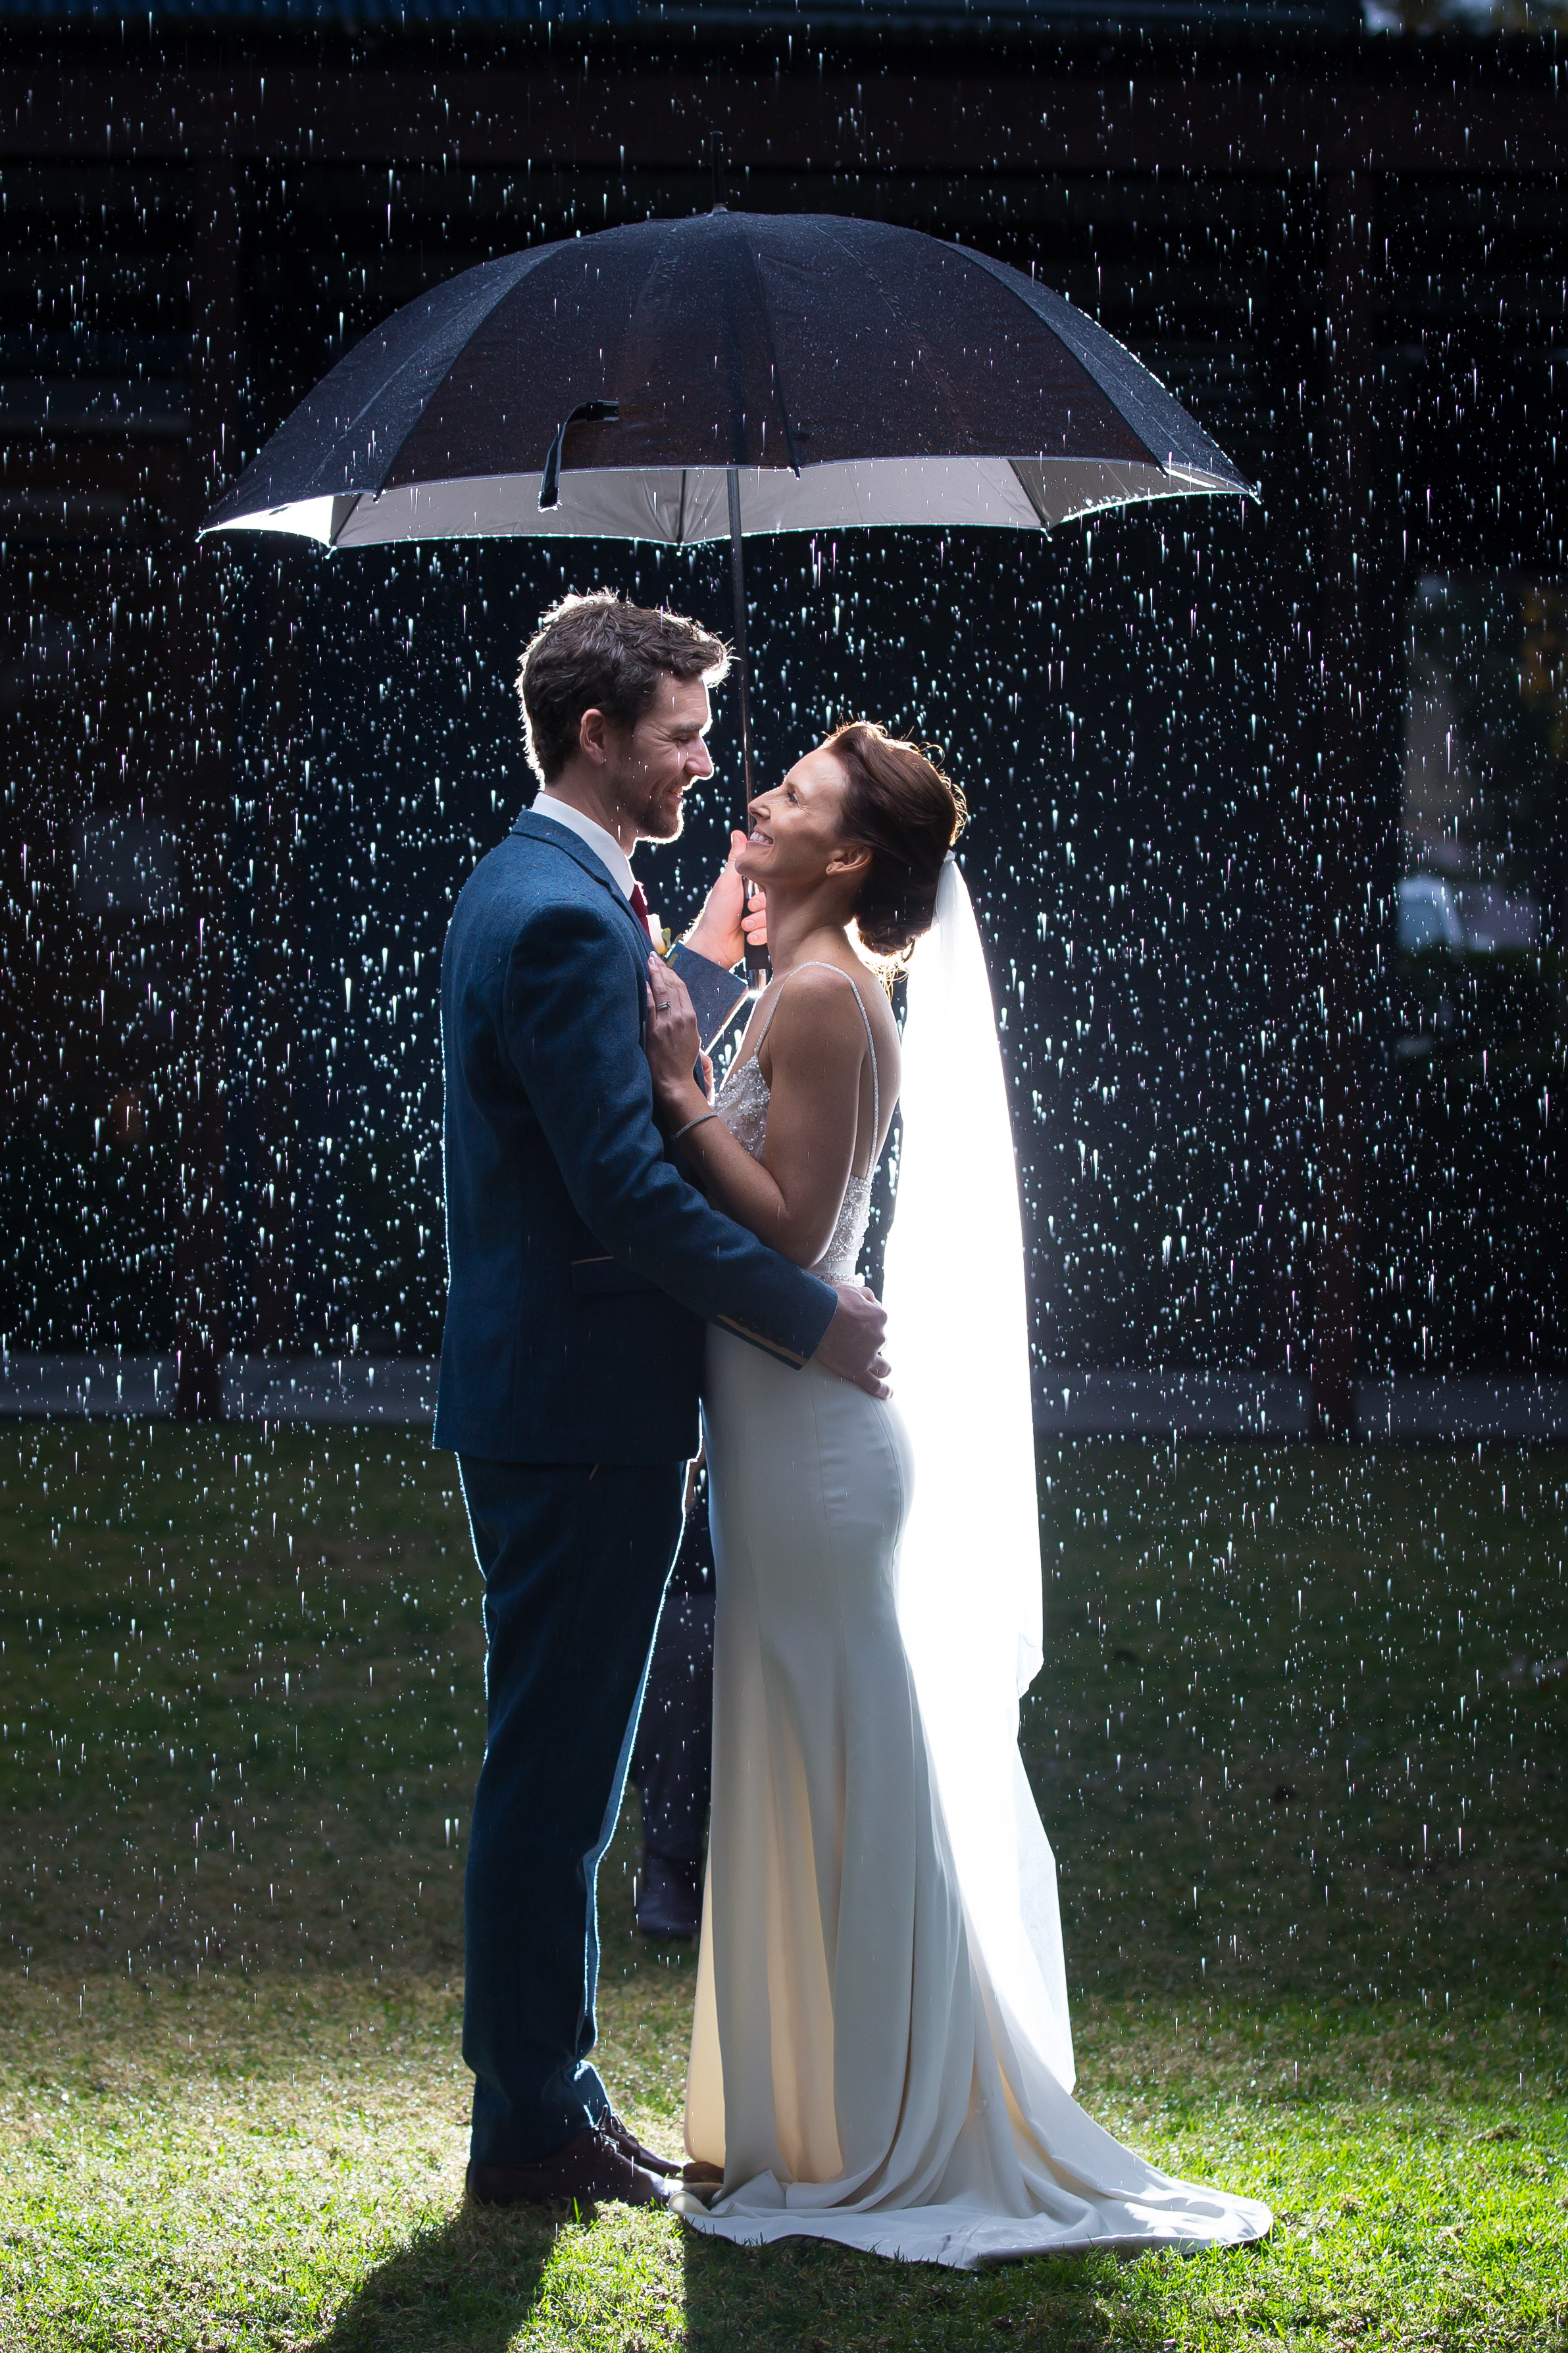 Rain became a constant companion through our wedding journey! (photo courtesy of Waterfield Photography)